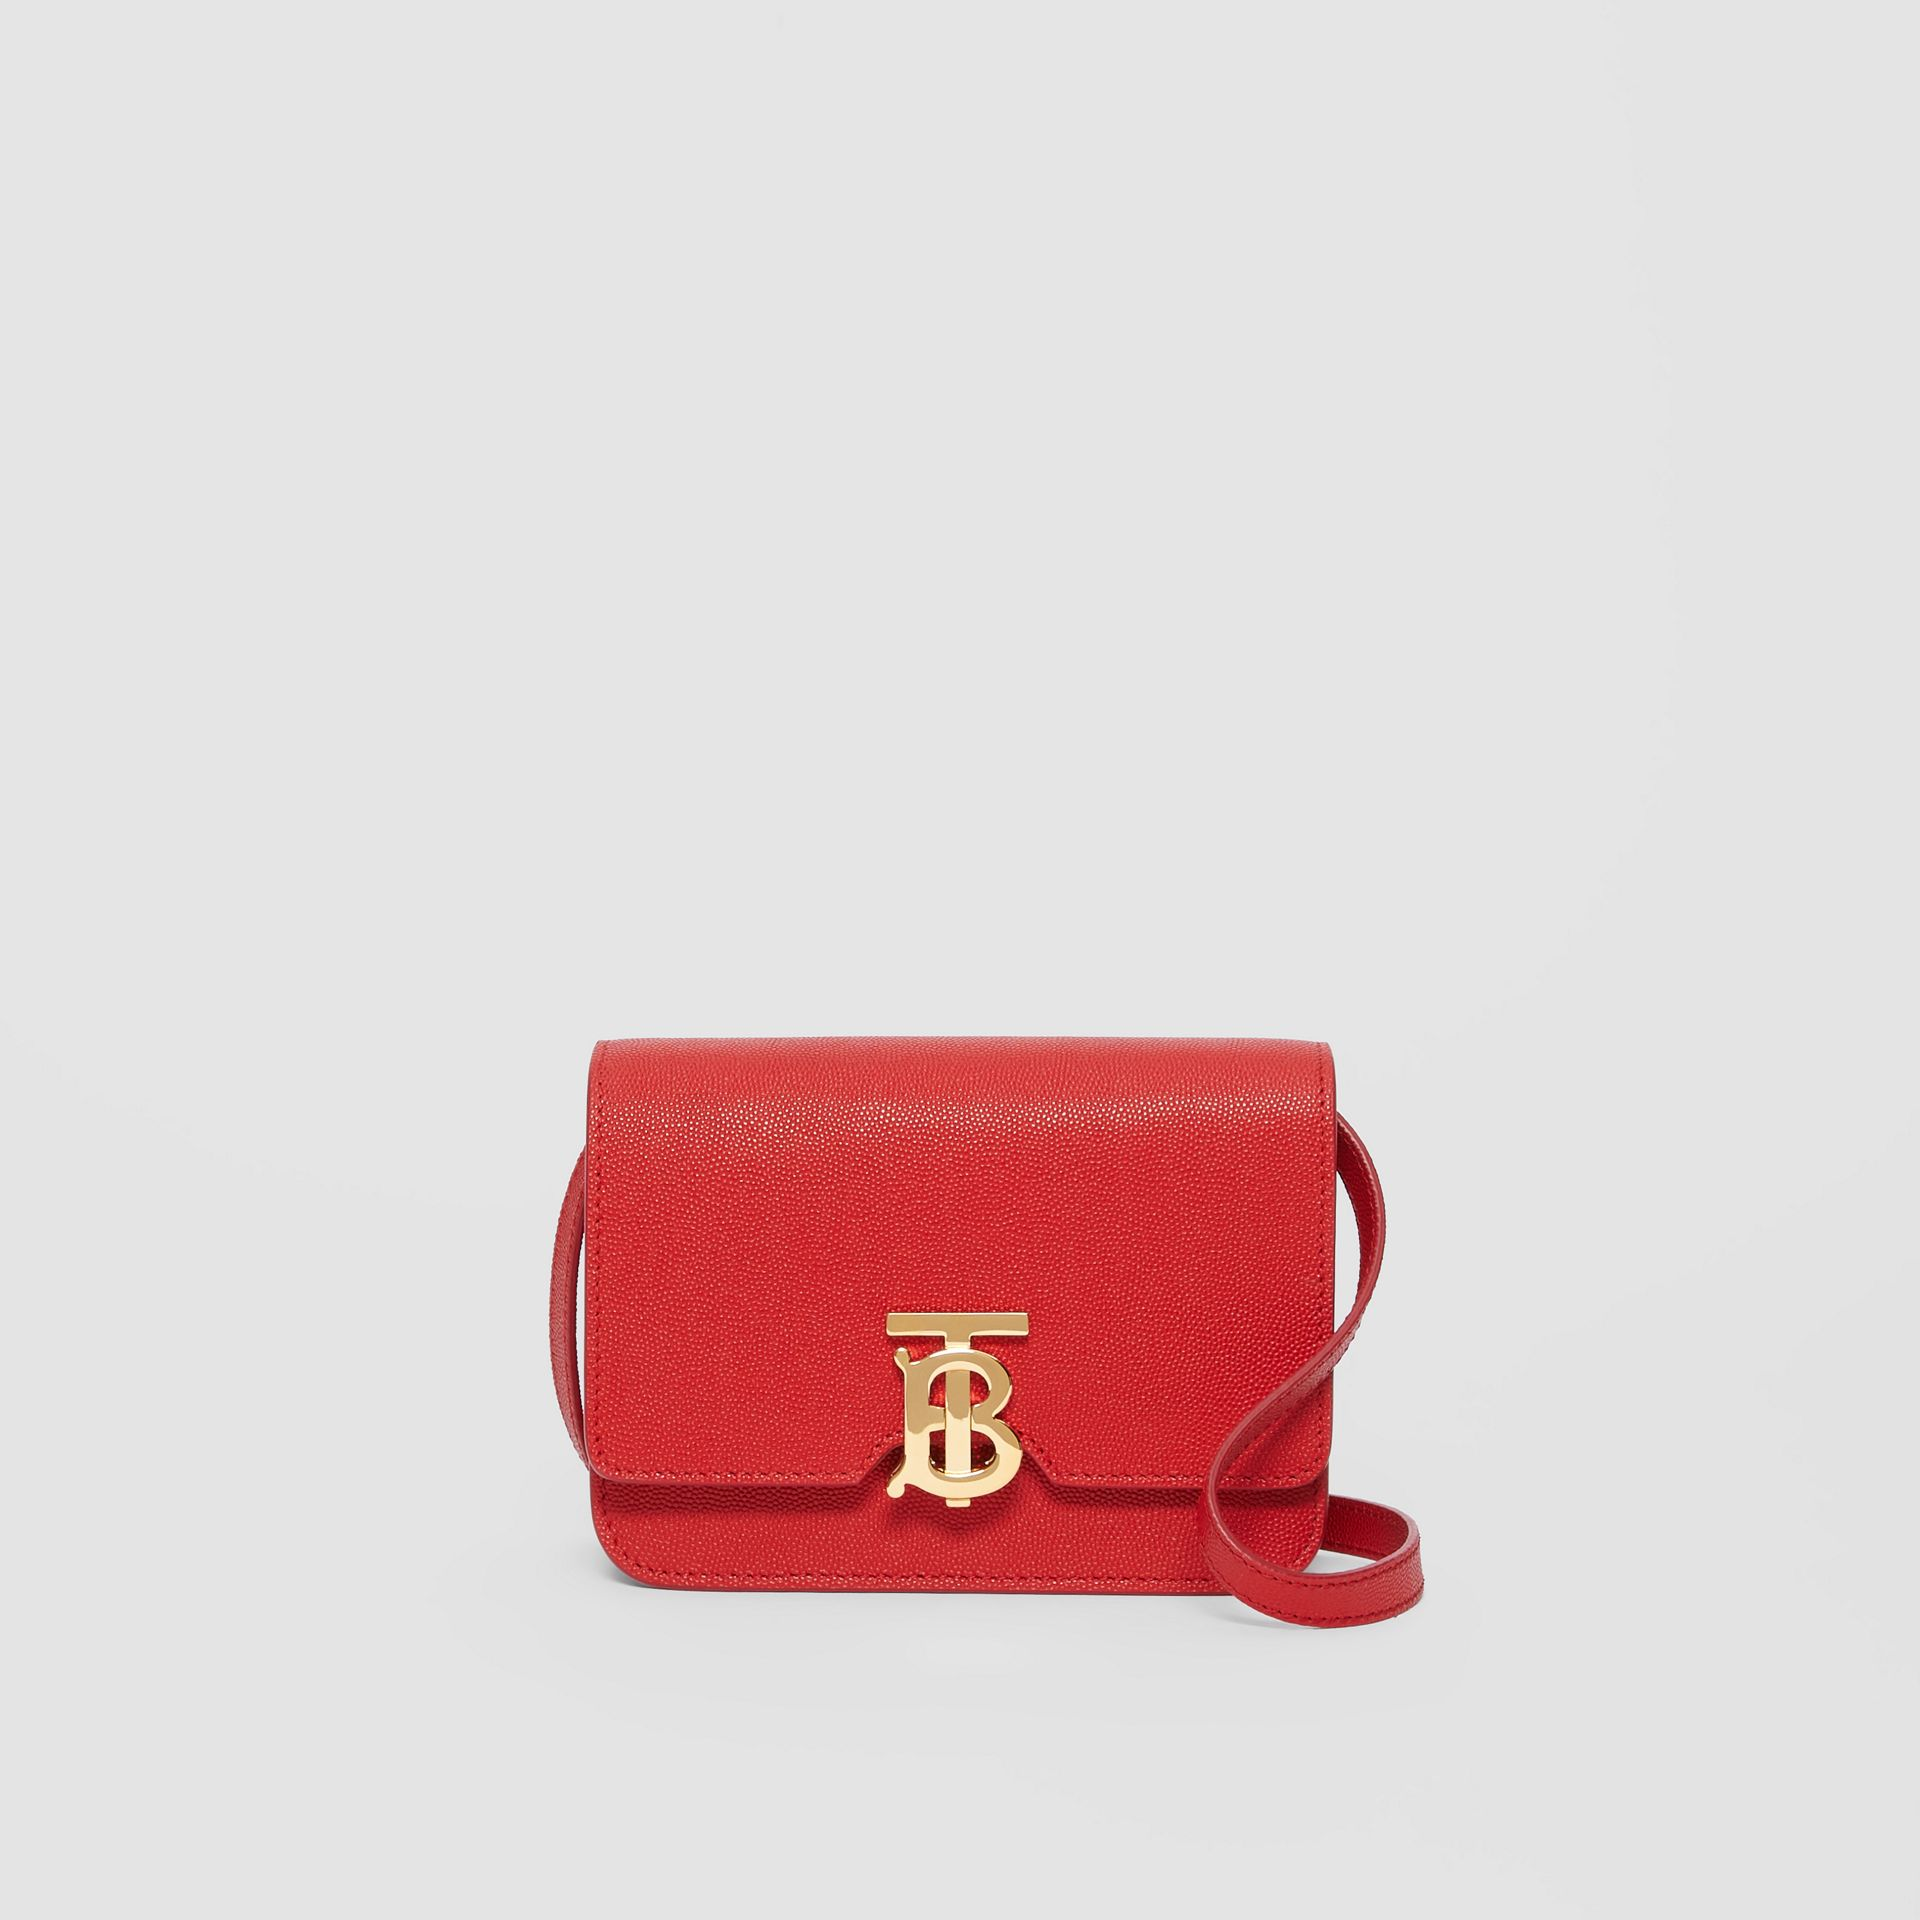 Mini Grainy Leather TB Bag in Bright Red - Women | Burberry Hong Kong S.A.R. - gallery image 0